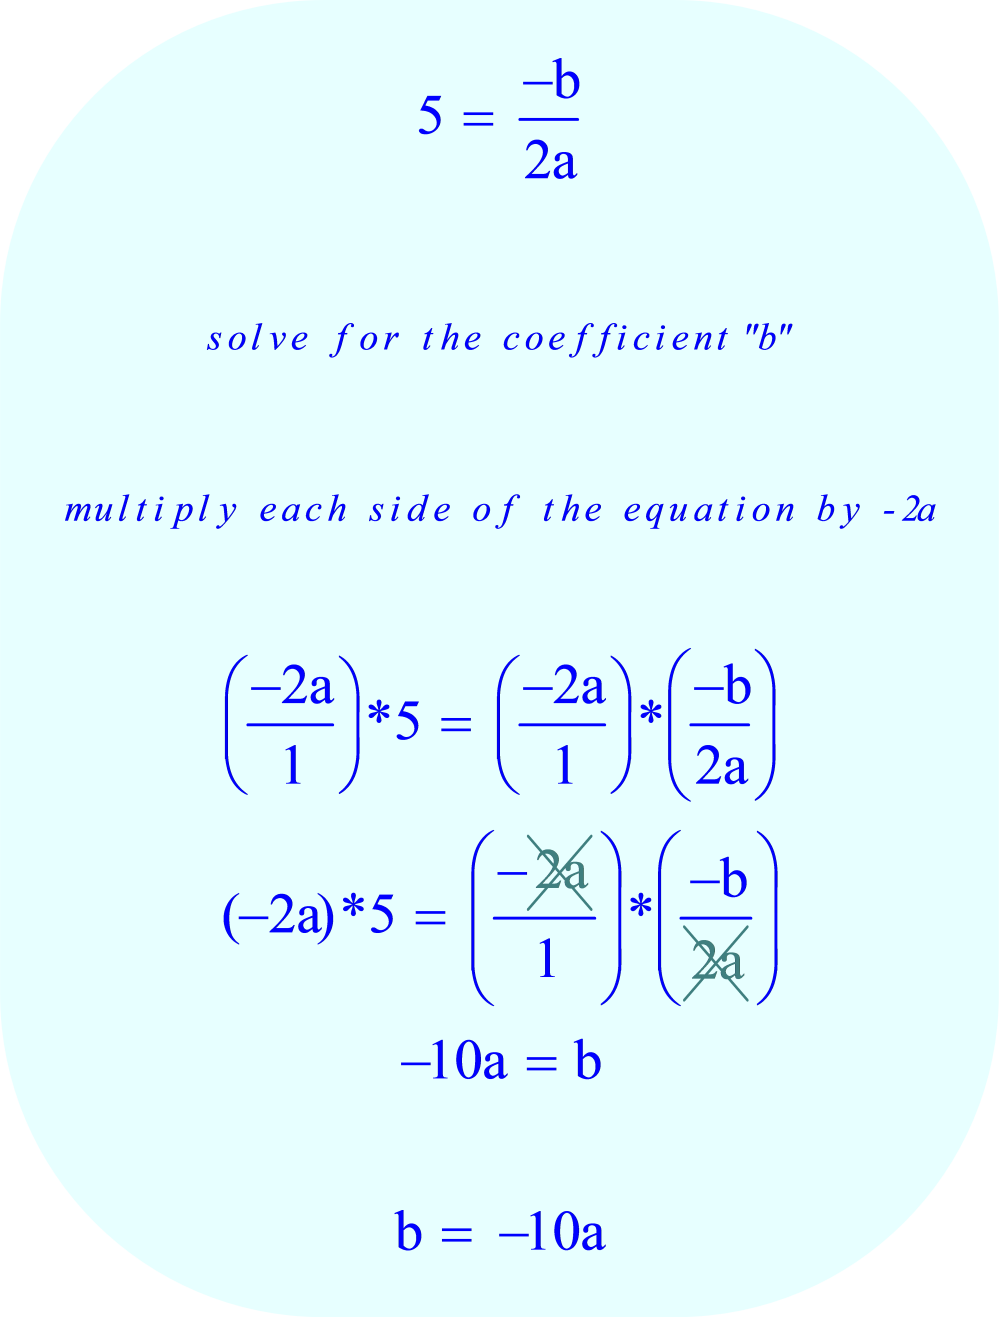 solve the equation for the 'b' coefficient in terms of 'a'